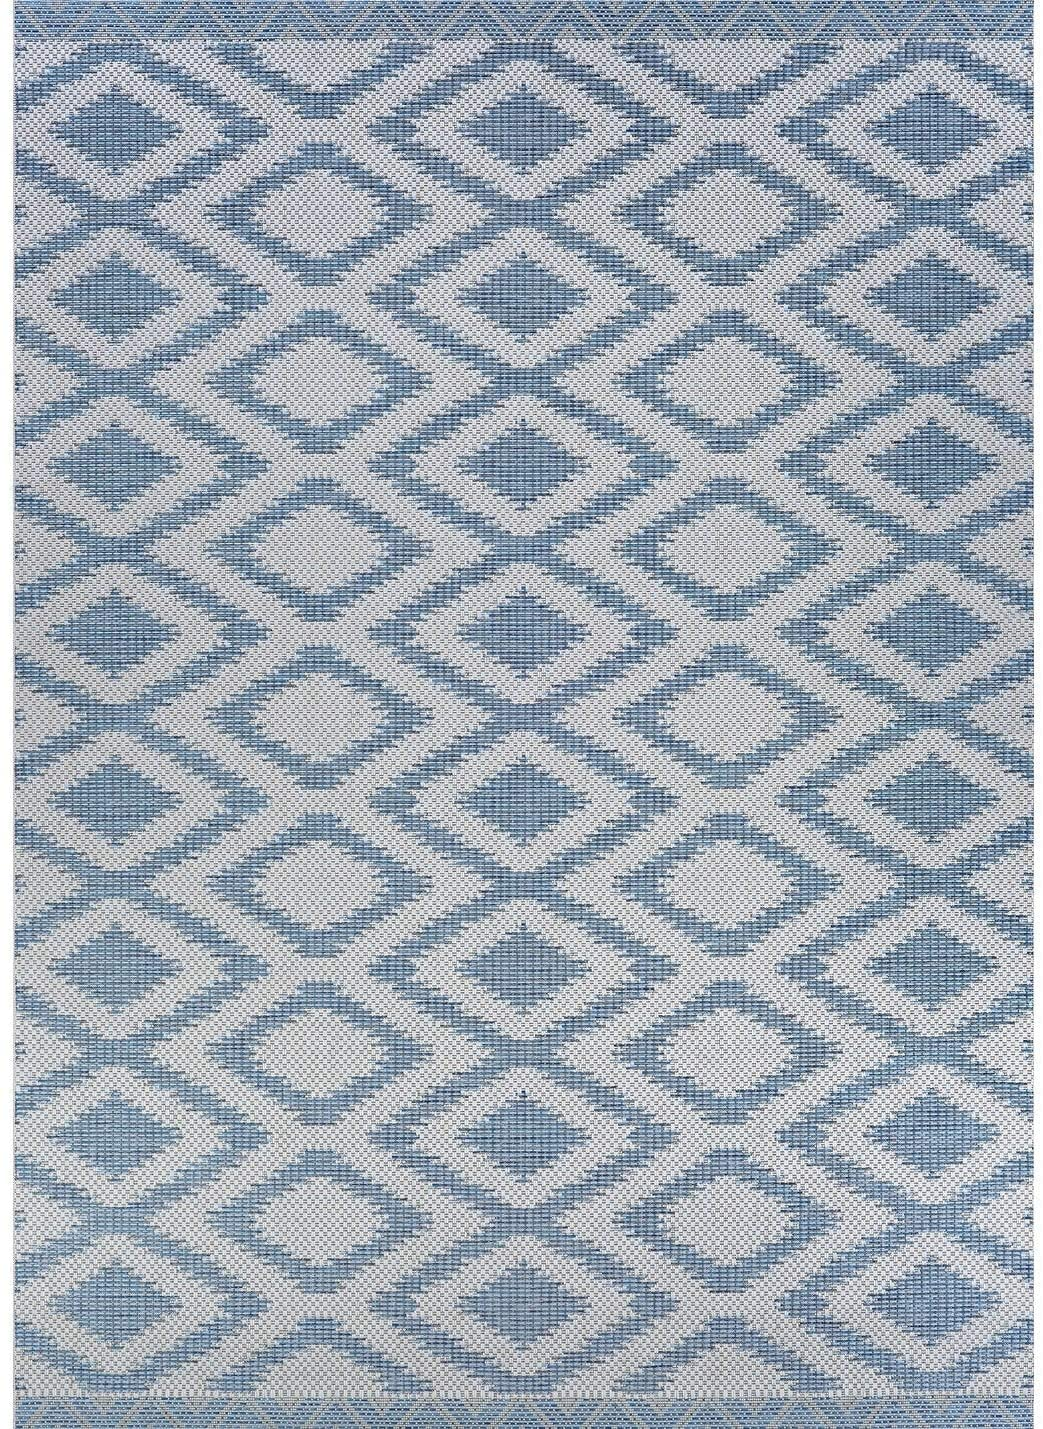 "Blue Indoor/Outdoor Runner Rug 2'3"" X 7'10"" Ivory Geometric Transitional Rectangle Polypropylene Contains Latex"